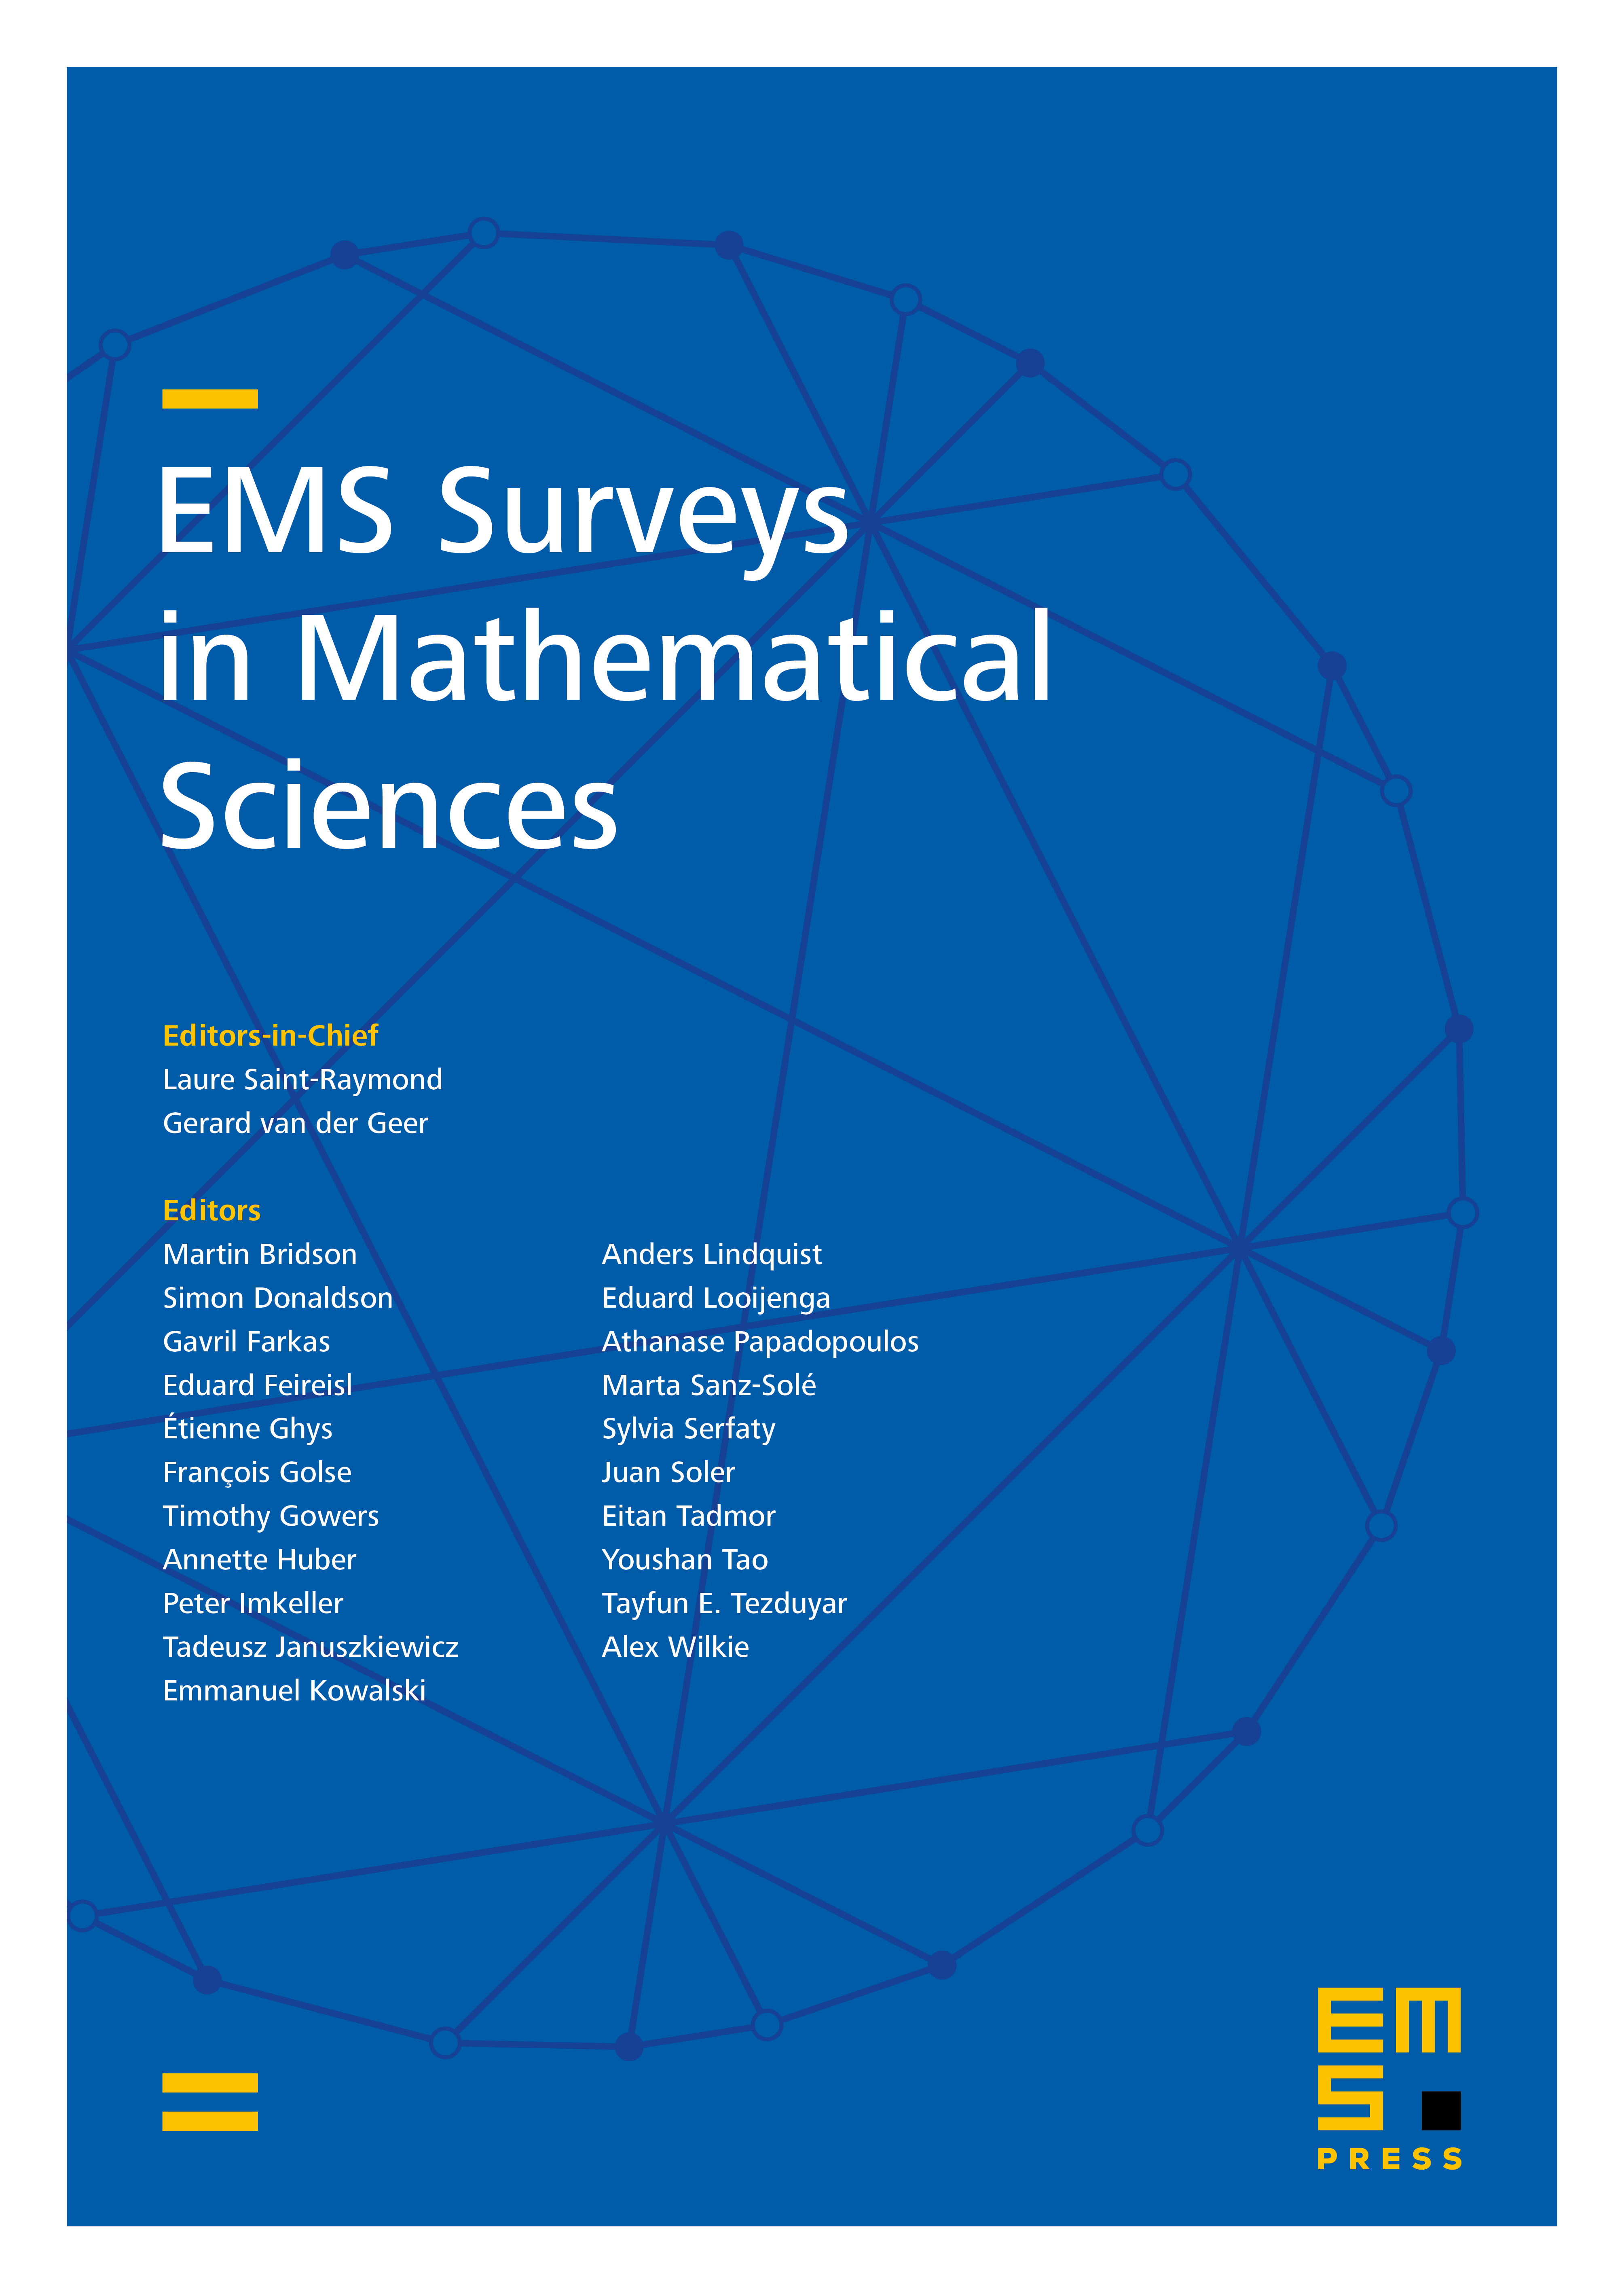 EMS Surveys in Mathematical Sciences cover